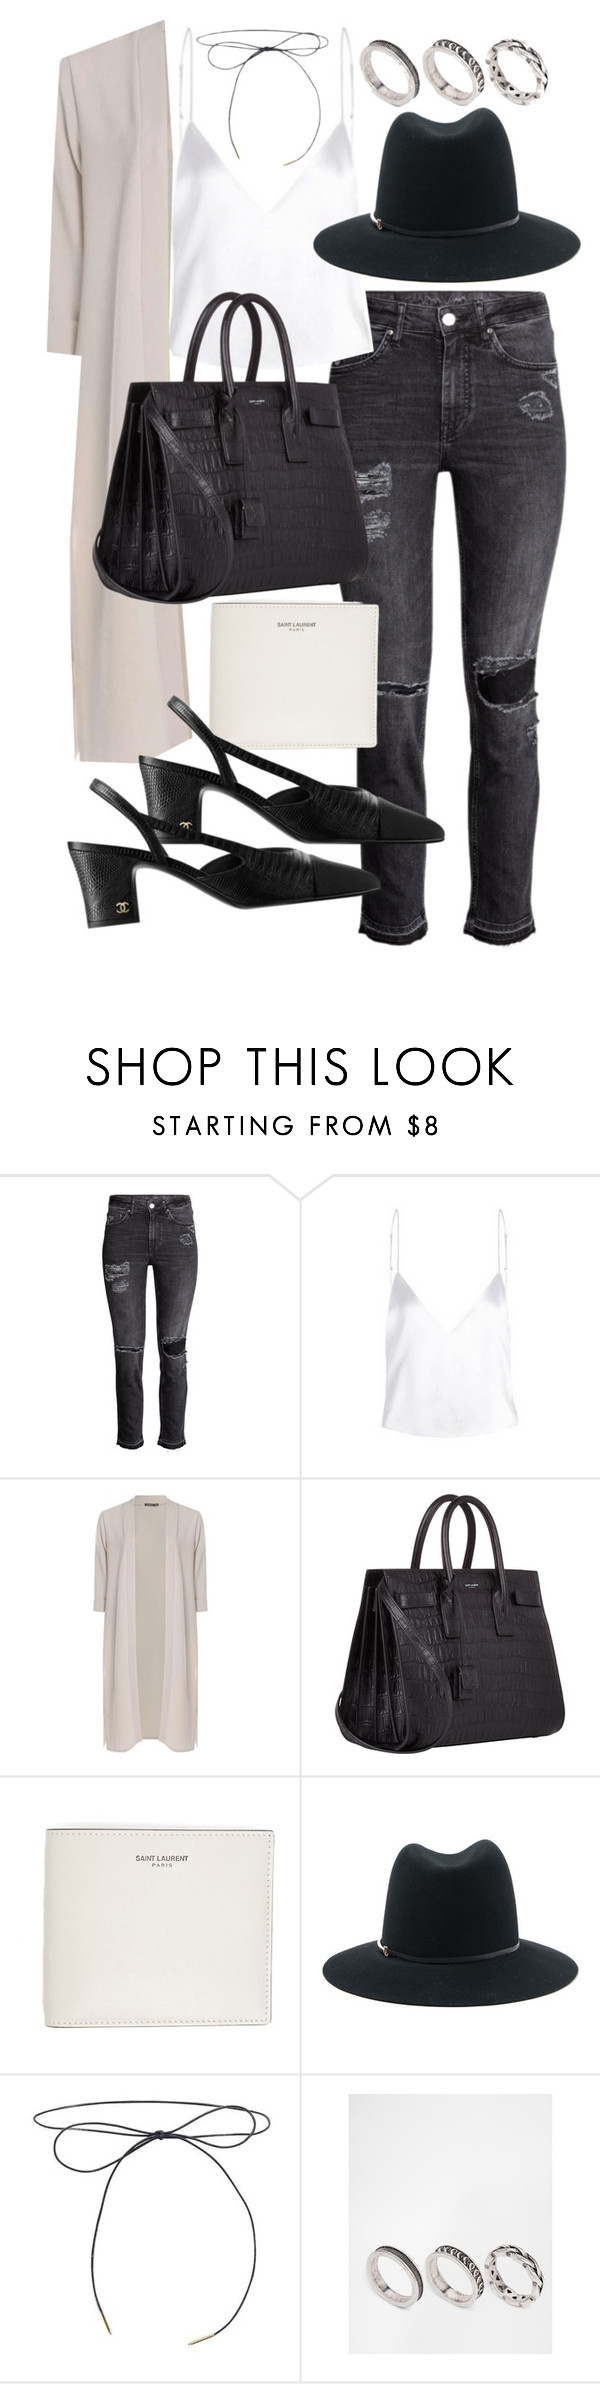 """Untitled #20351"" by florencia95 ❤ liked on Polyvore featuring Boohoo, Yves Saint Laurent, Janessa Leone and ASOS"